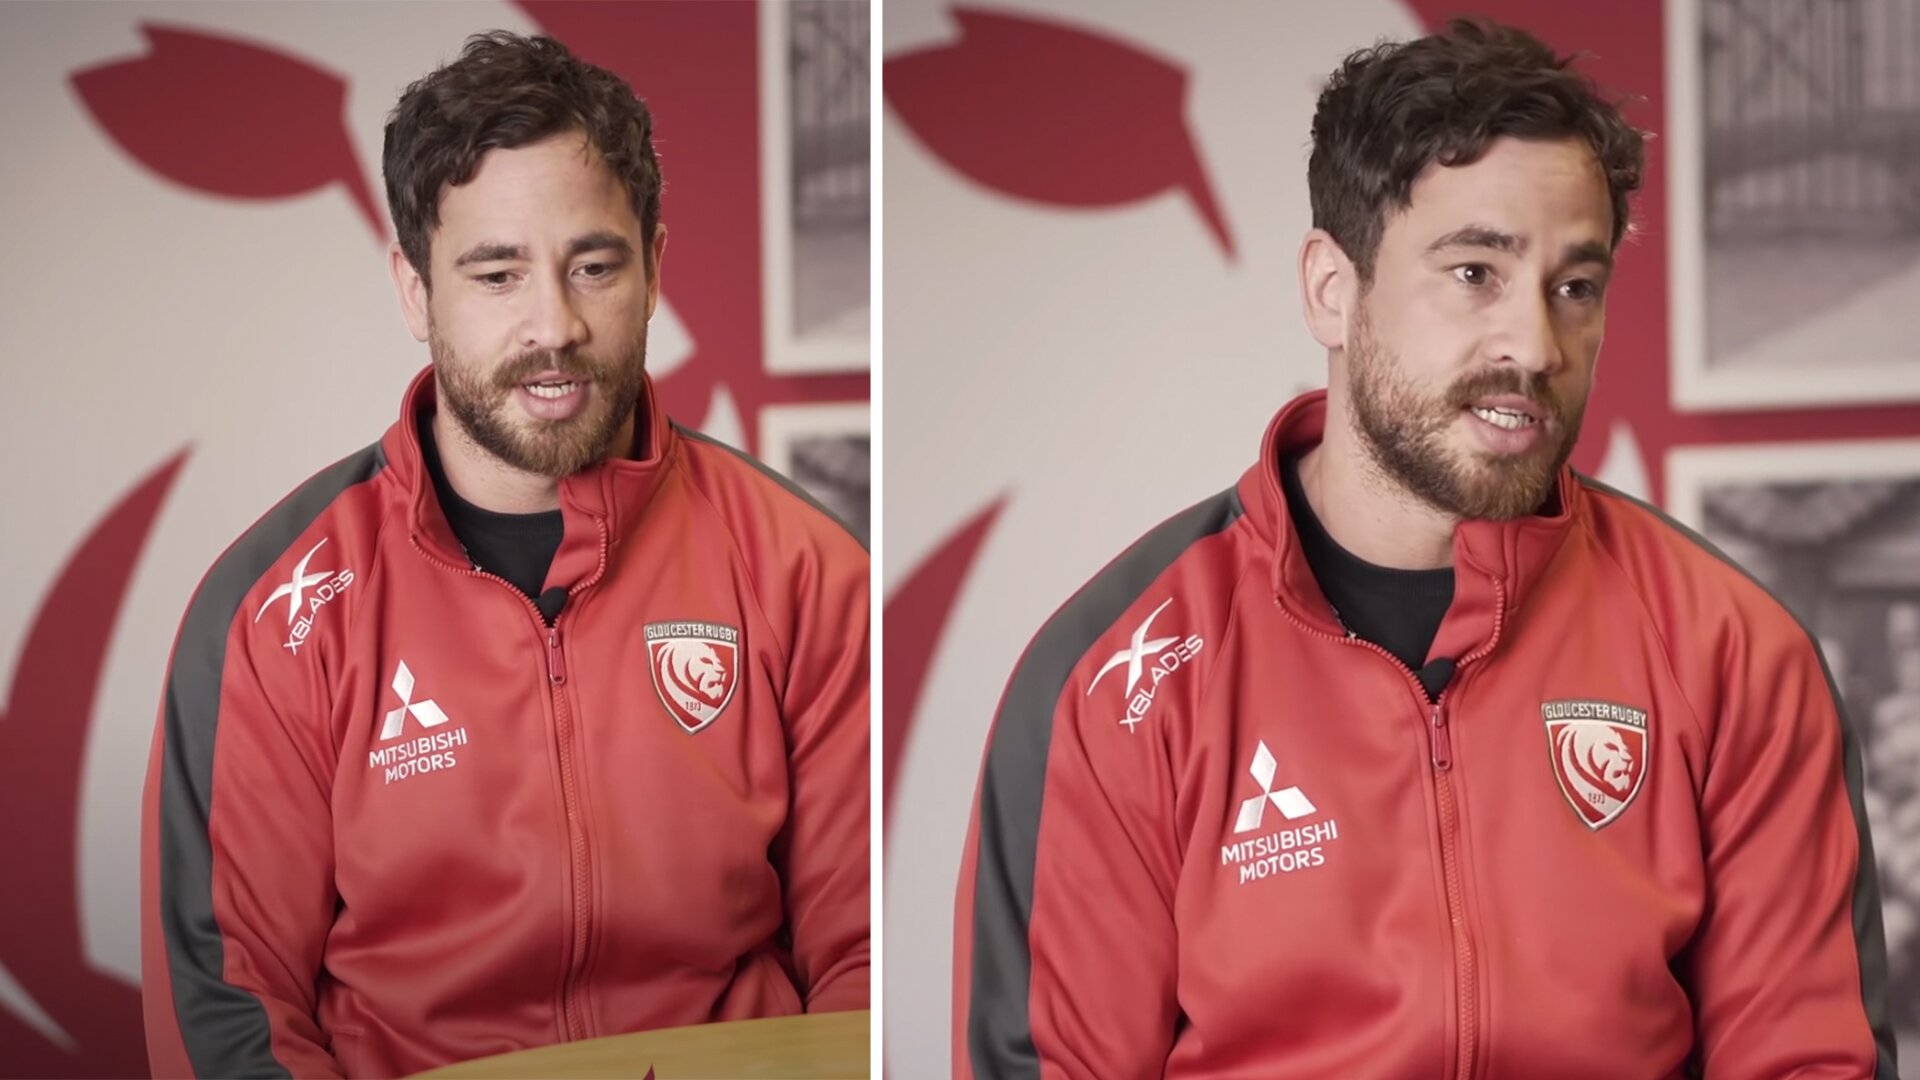 Rugby's reaction to Danny Cipriani and the sudden news that he is leaving Gloucester rugby